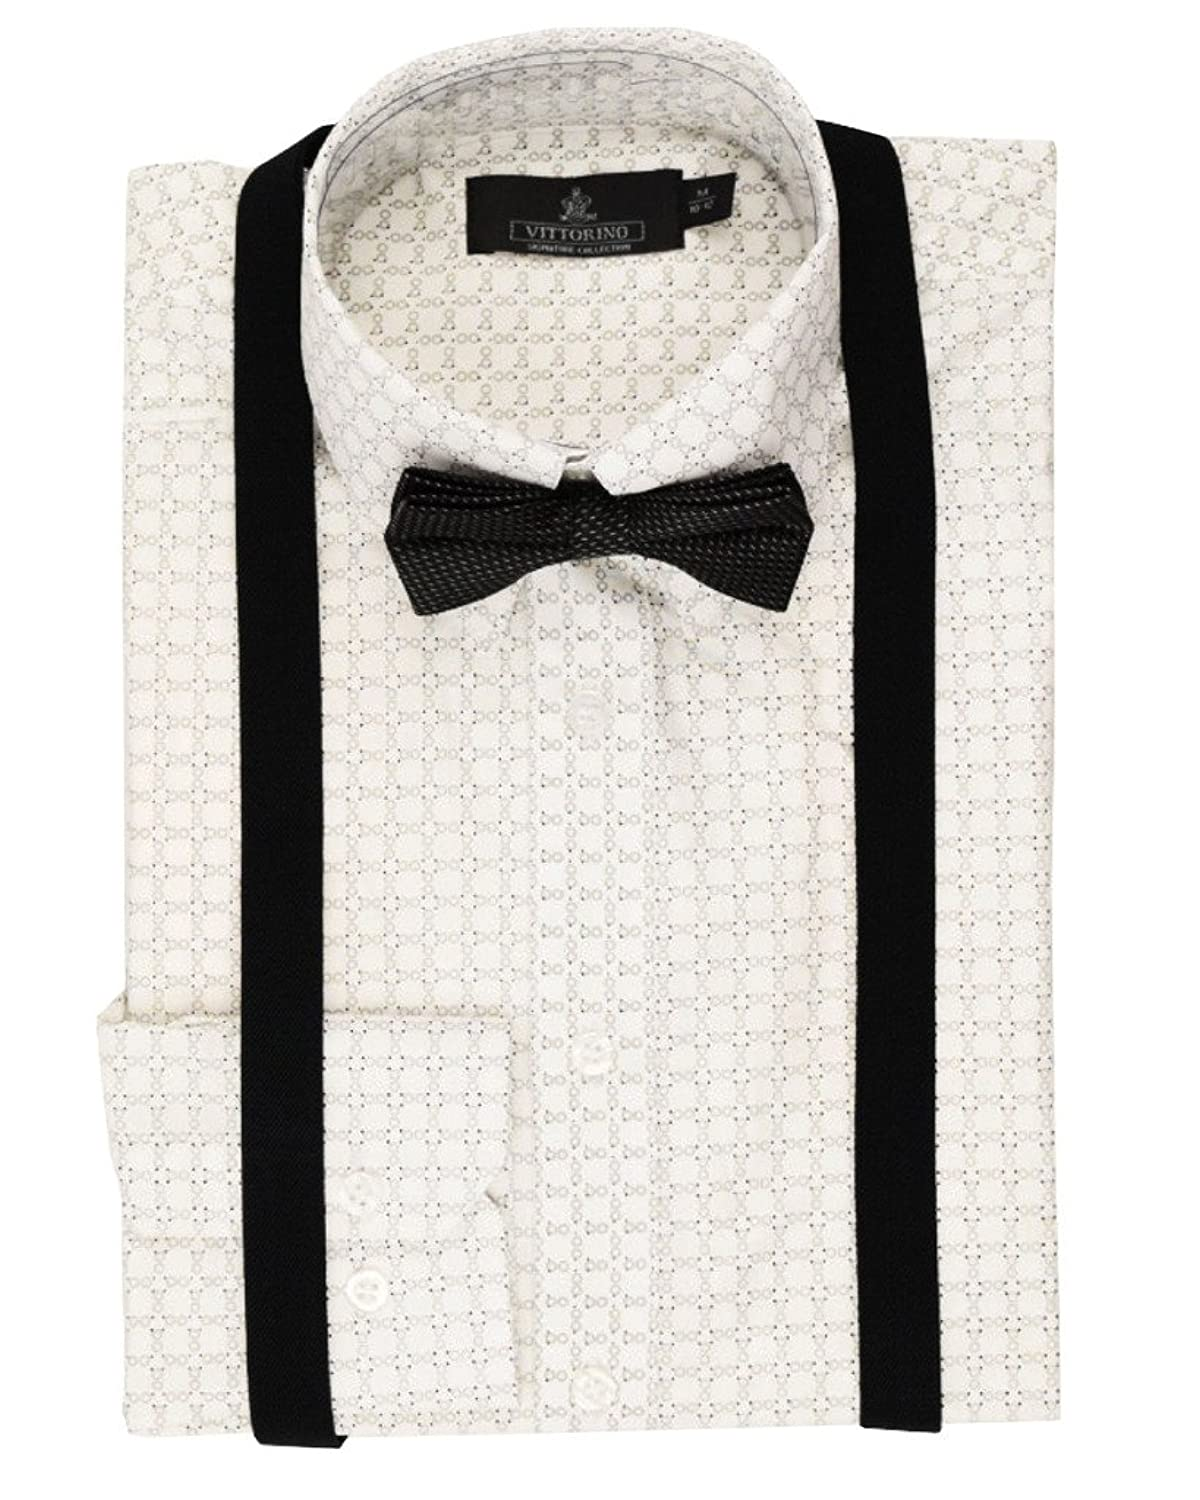 4c83c3e98 Shirt 55% cotton 45% polyester. Bow tie is pre tied and adjustable neck.  Durable long lasting suspenders with double clips for a strong hold on the  pants